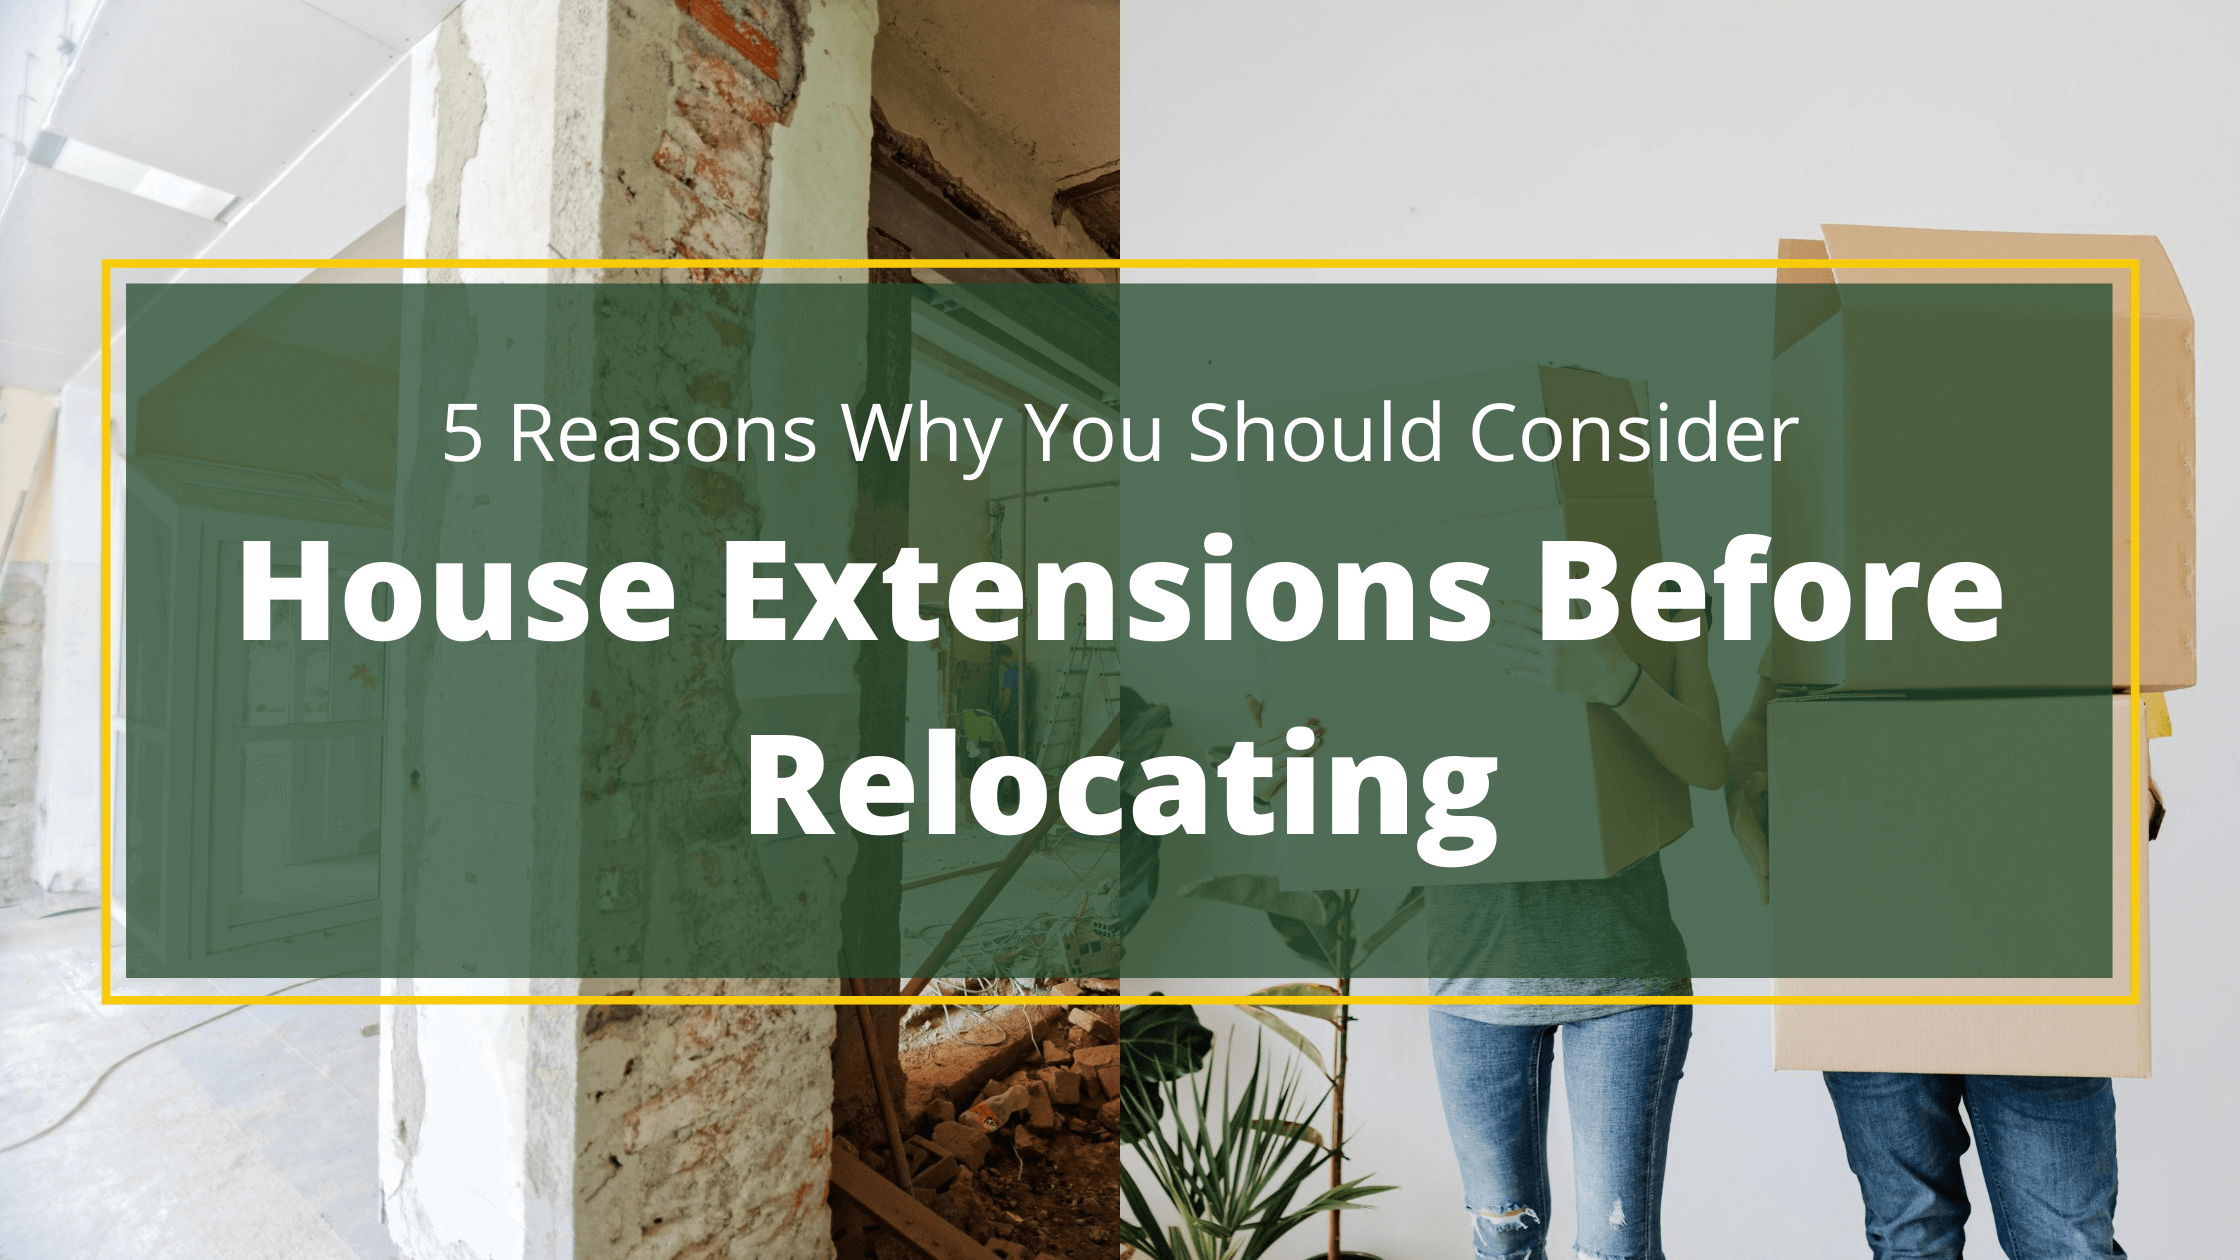 House Extensions vs Relocating